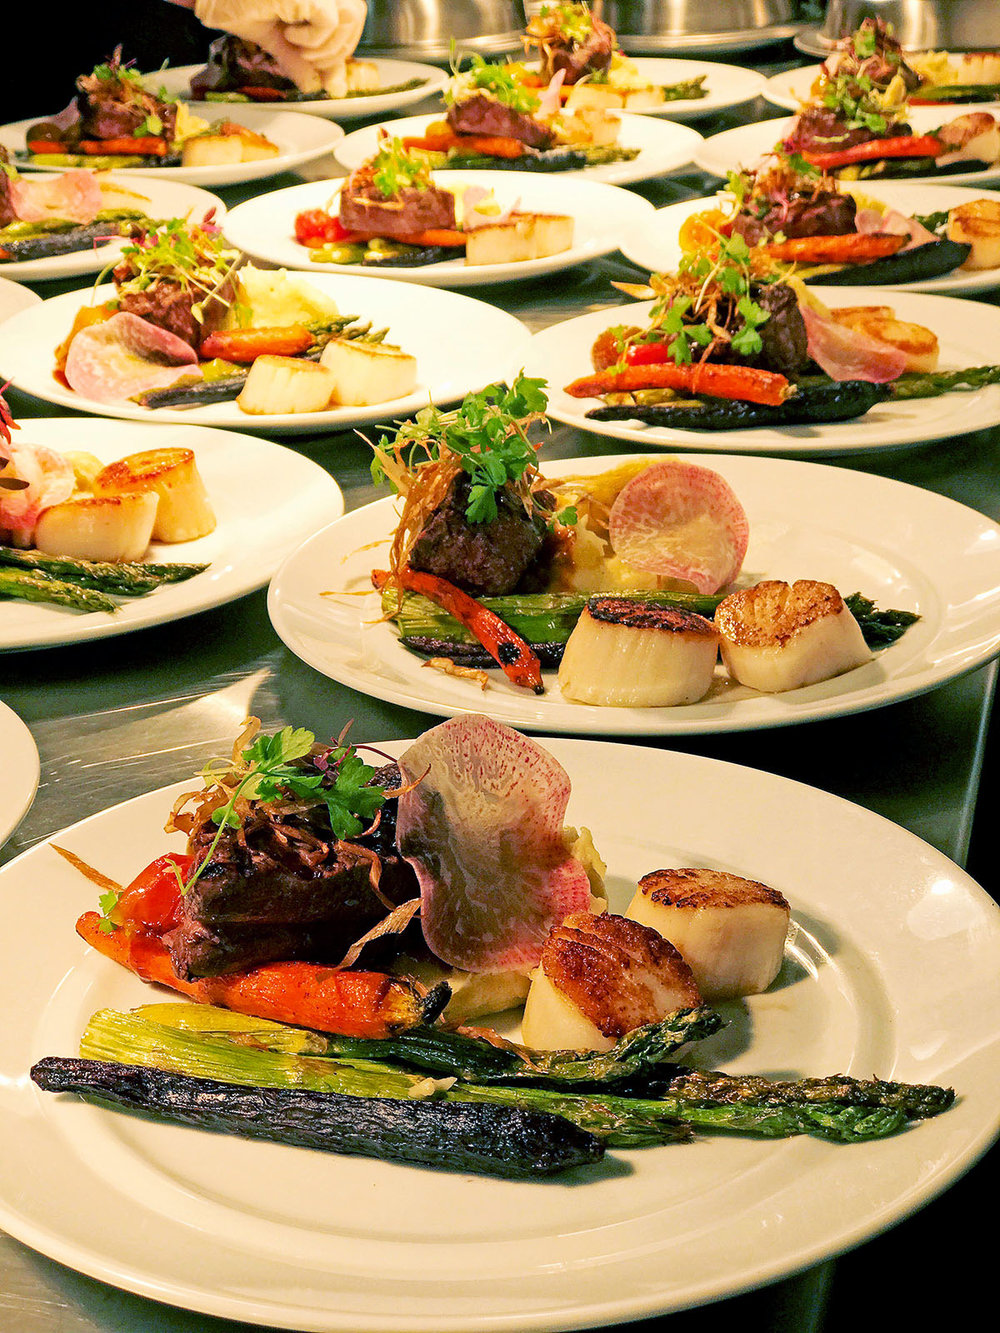 Our Chef featured a colorful Duo Plate of Beef Tenderloin & Diver Scallops with White Truffle Mashed Potatoes, Asparagus and Artisan Carved Baby Carrots topped with Toasted Leeks